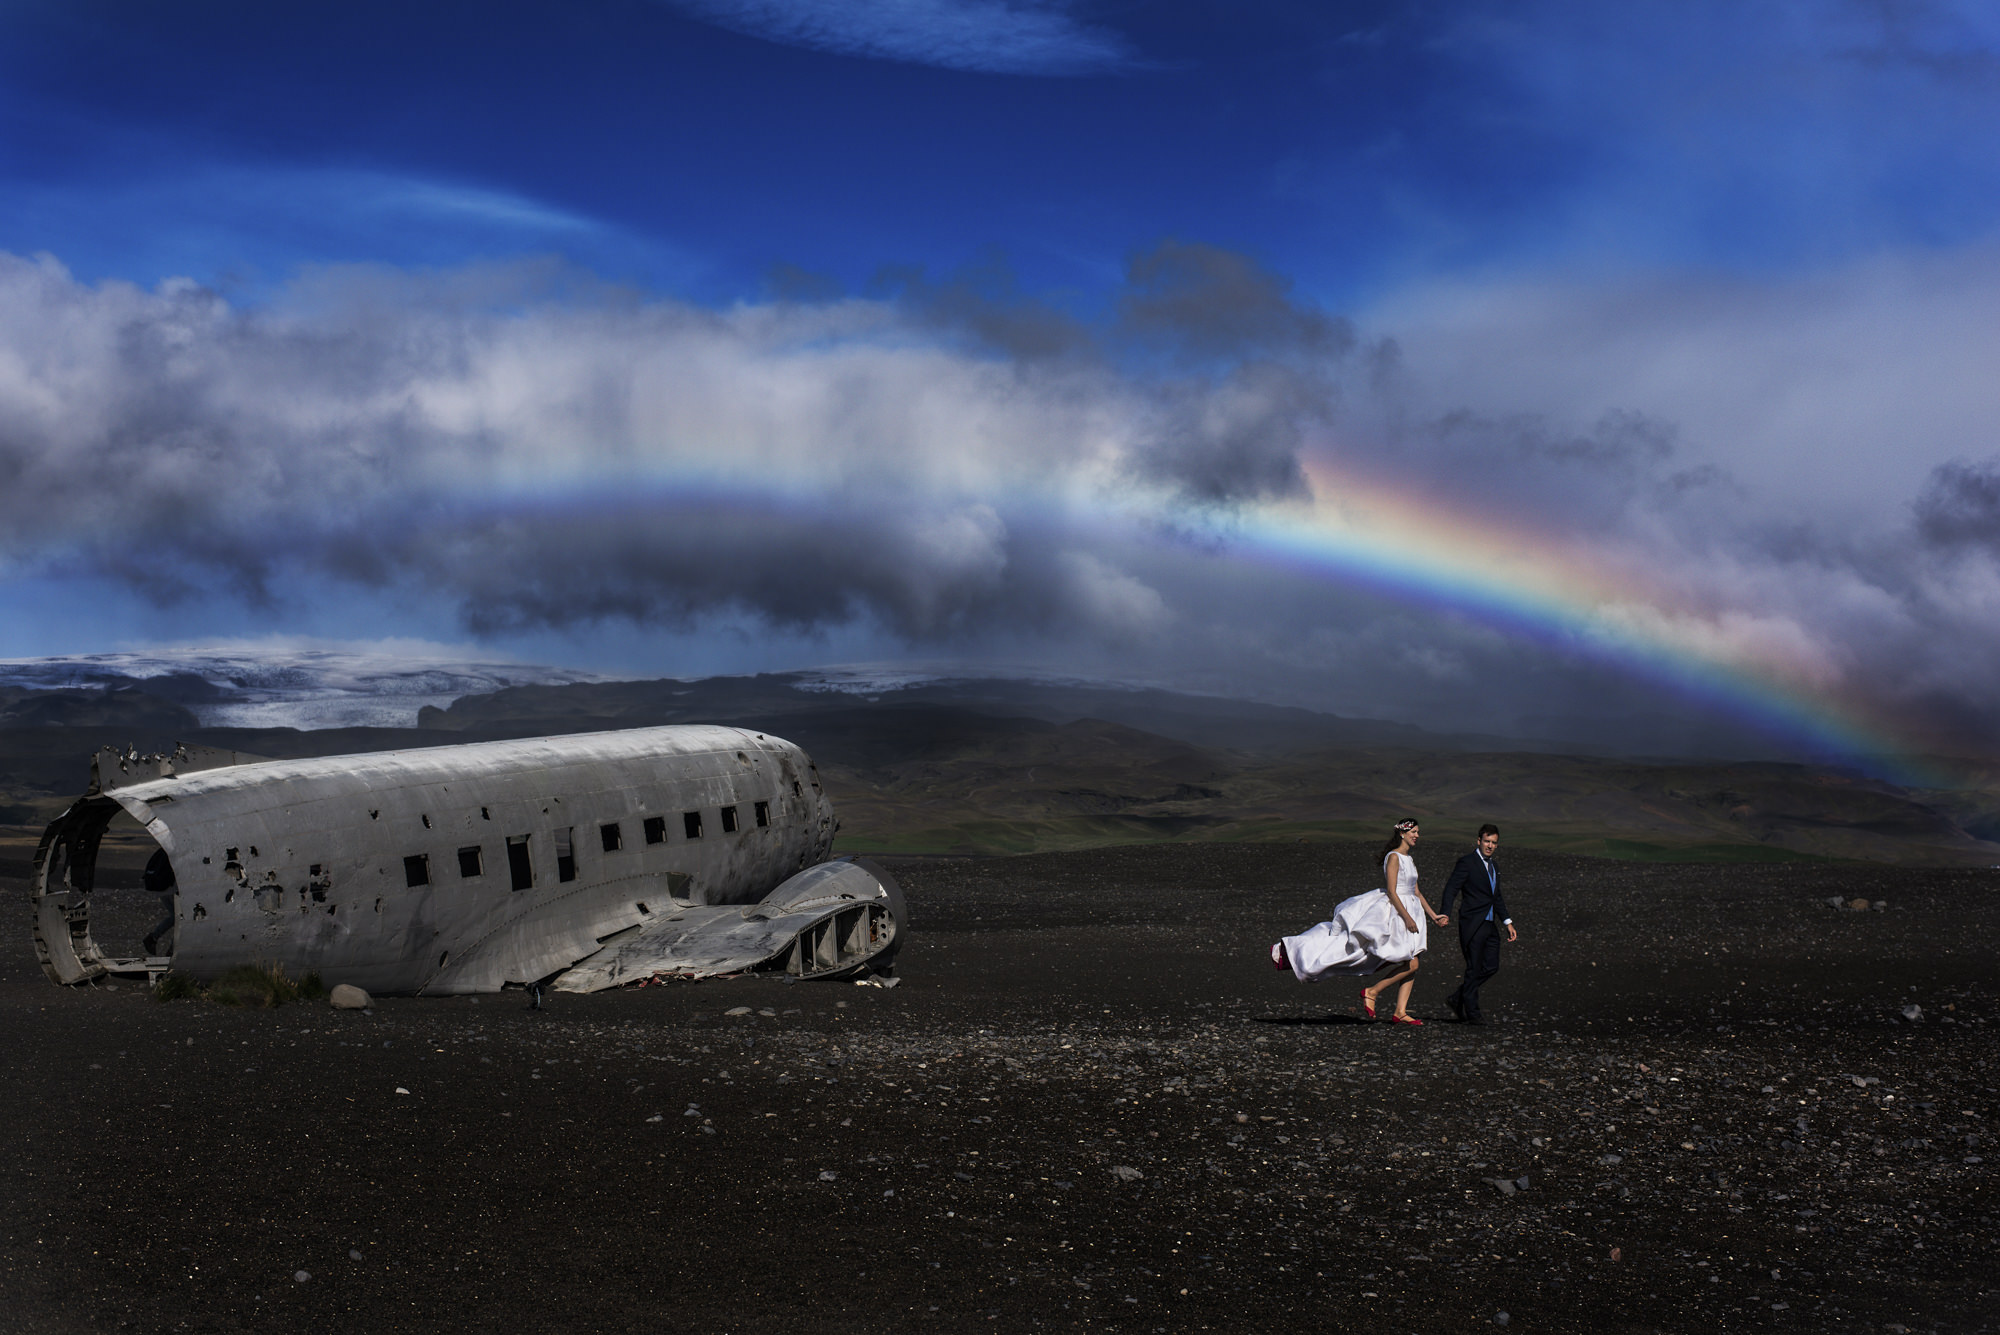 Bride and groom at plane wreck with rainbow - photo by Look Fotographica